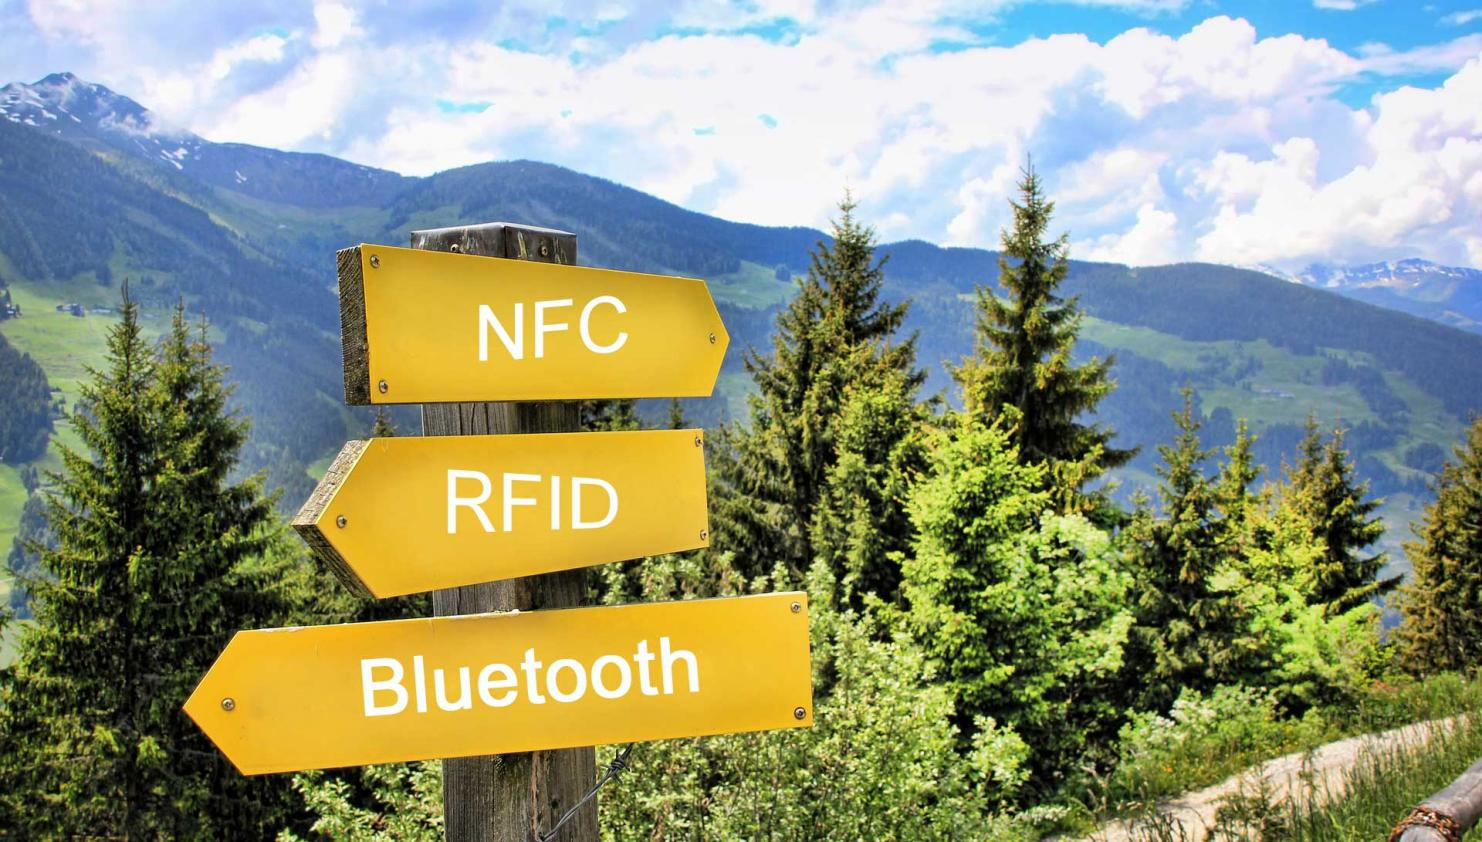 Everything there is to know about NFC, RFID and Bluetooth